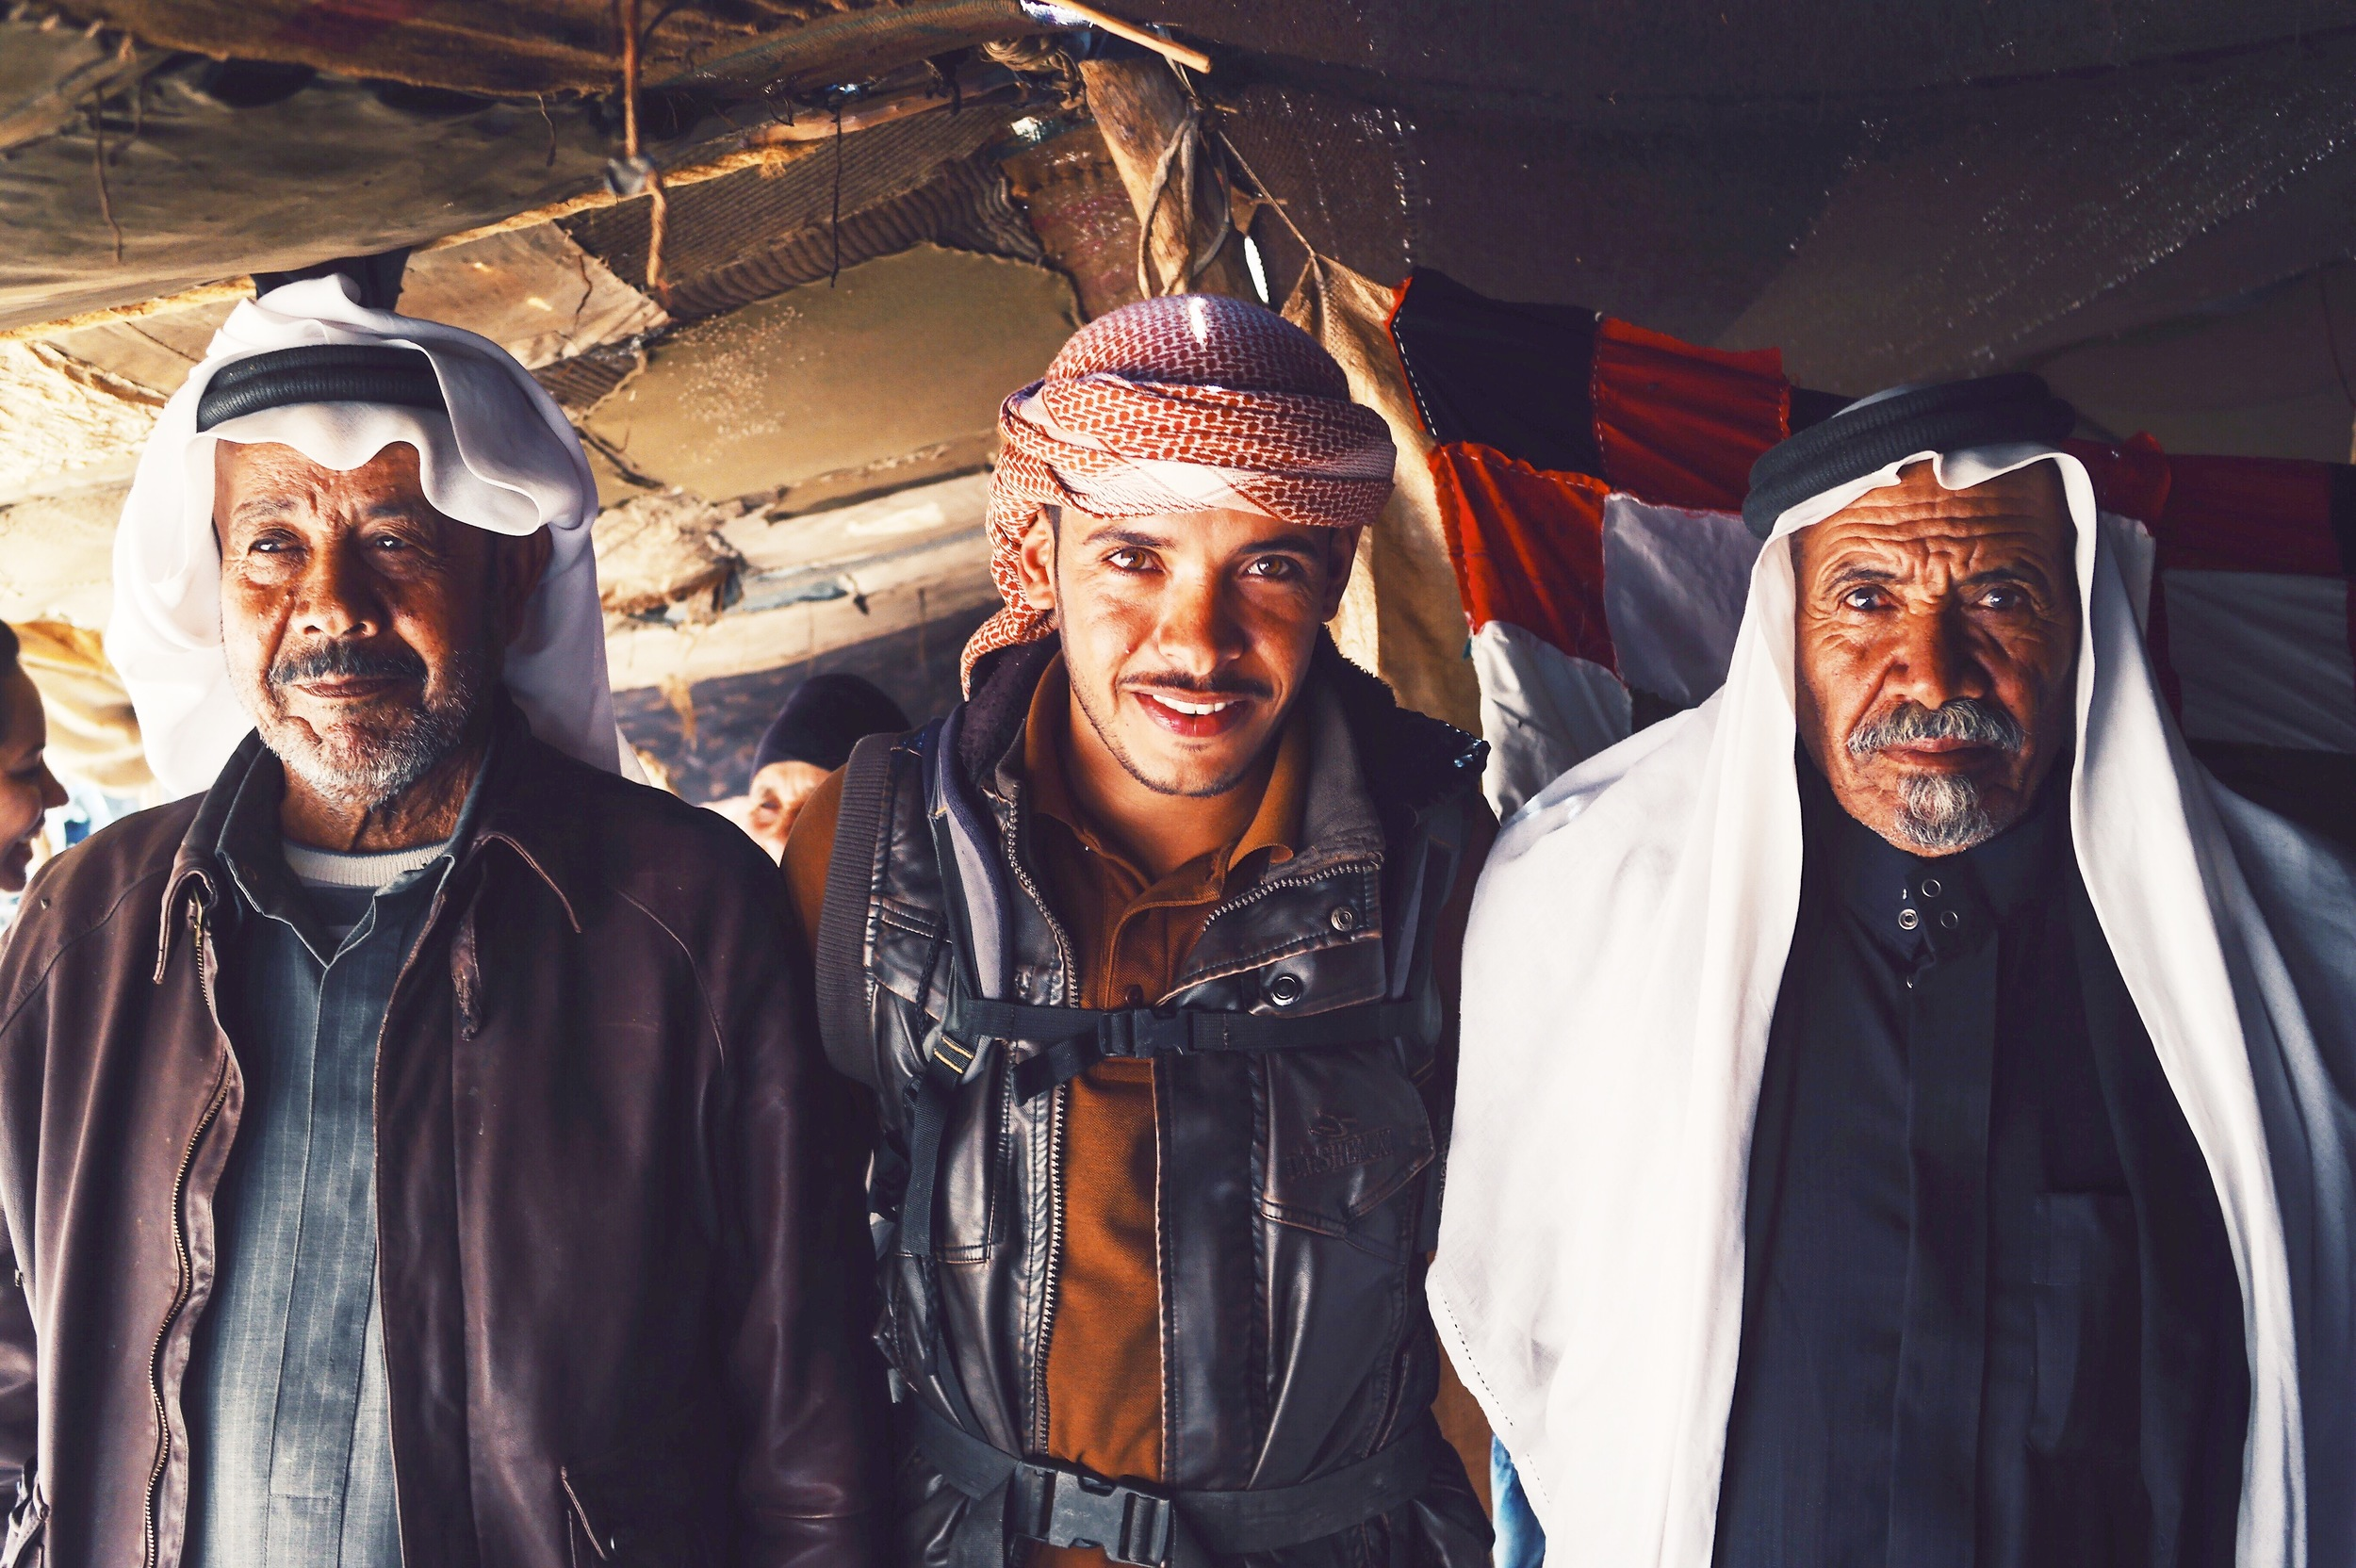 Feynan Ecolodge Bedouin Guide, Suleman (center) with his father (right) & uncle (left).